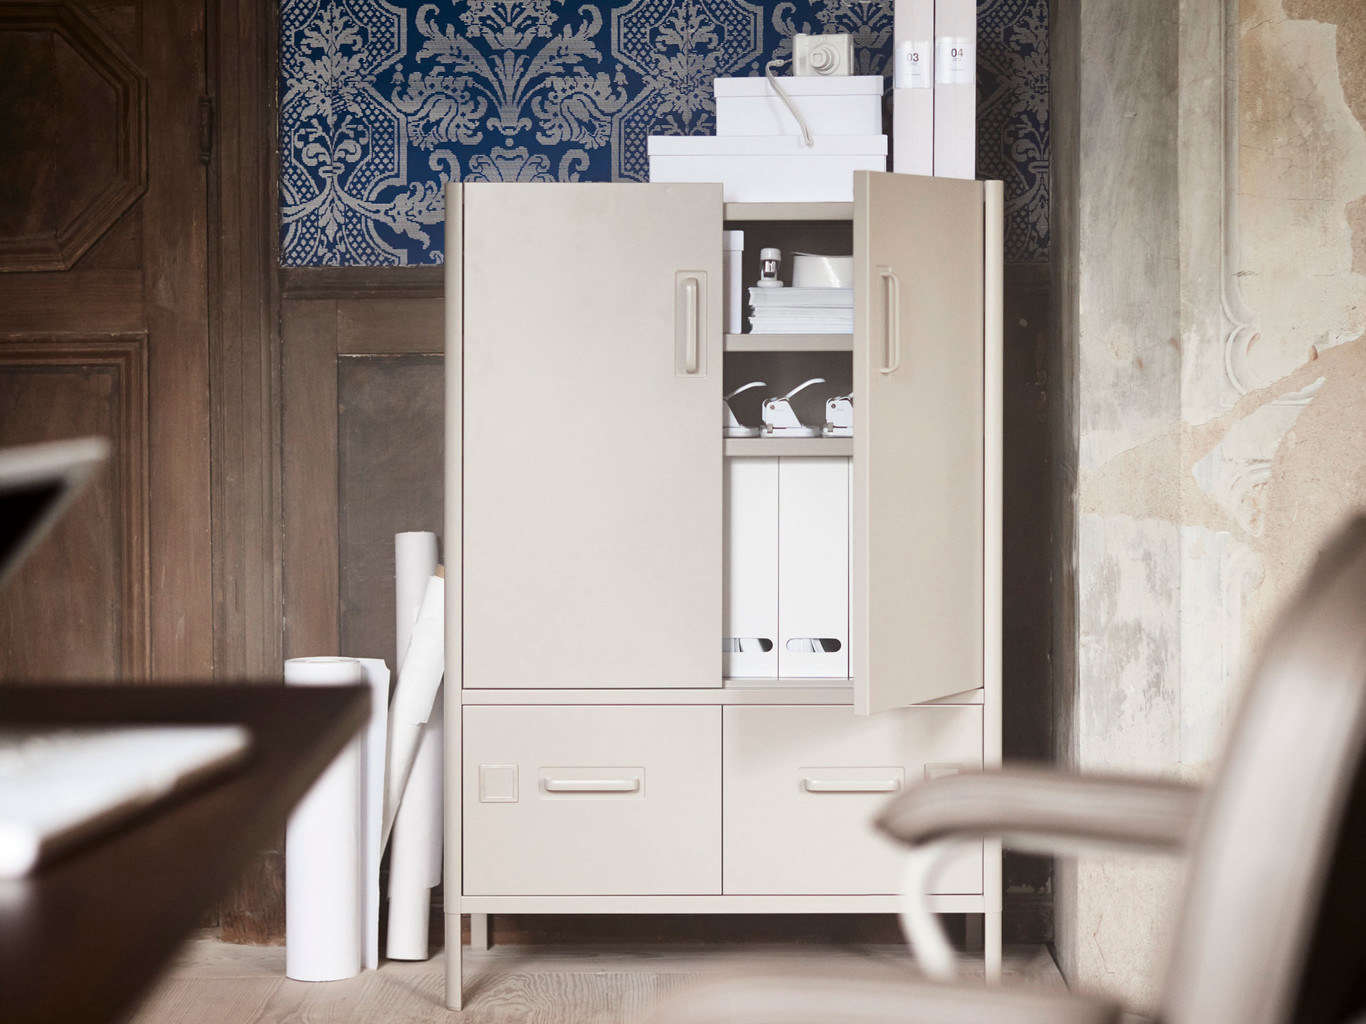 Ikea Home Filing System New Noteworthy Introducing Idåsen Ikea S New Storage Series